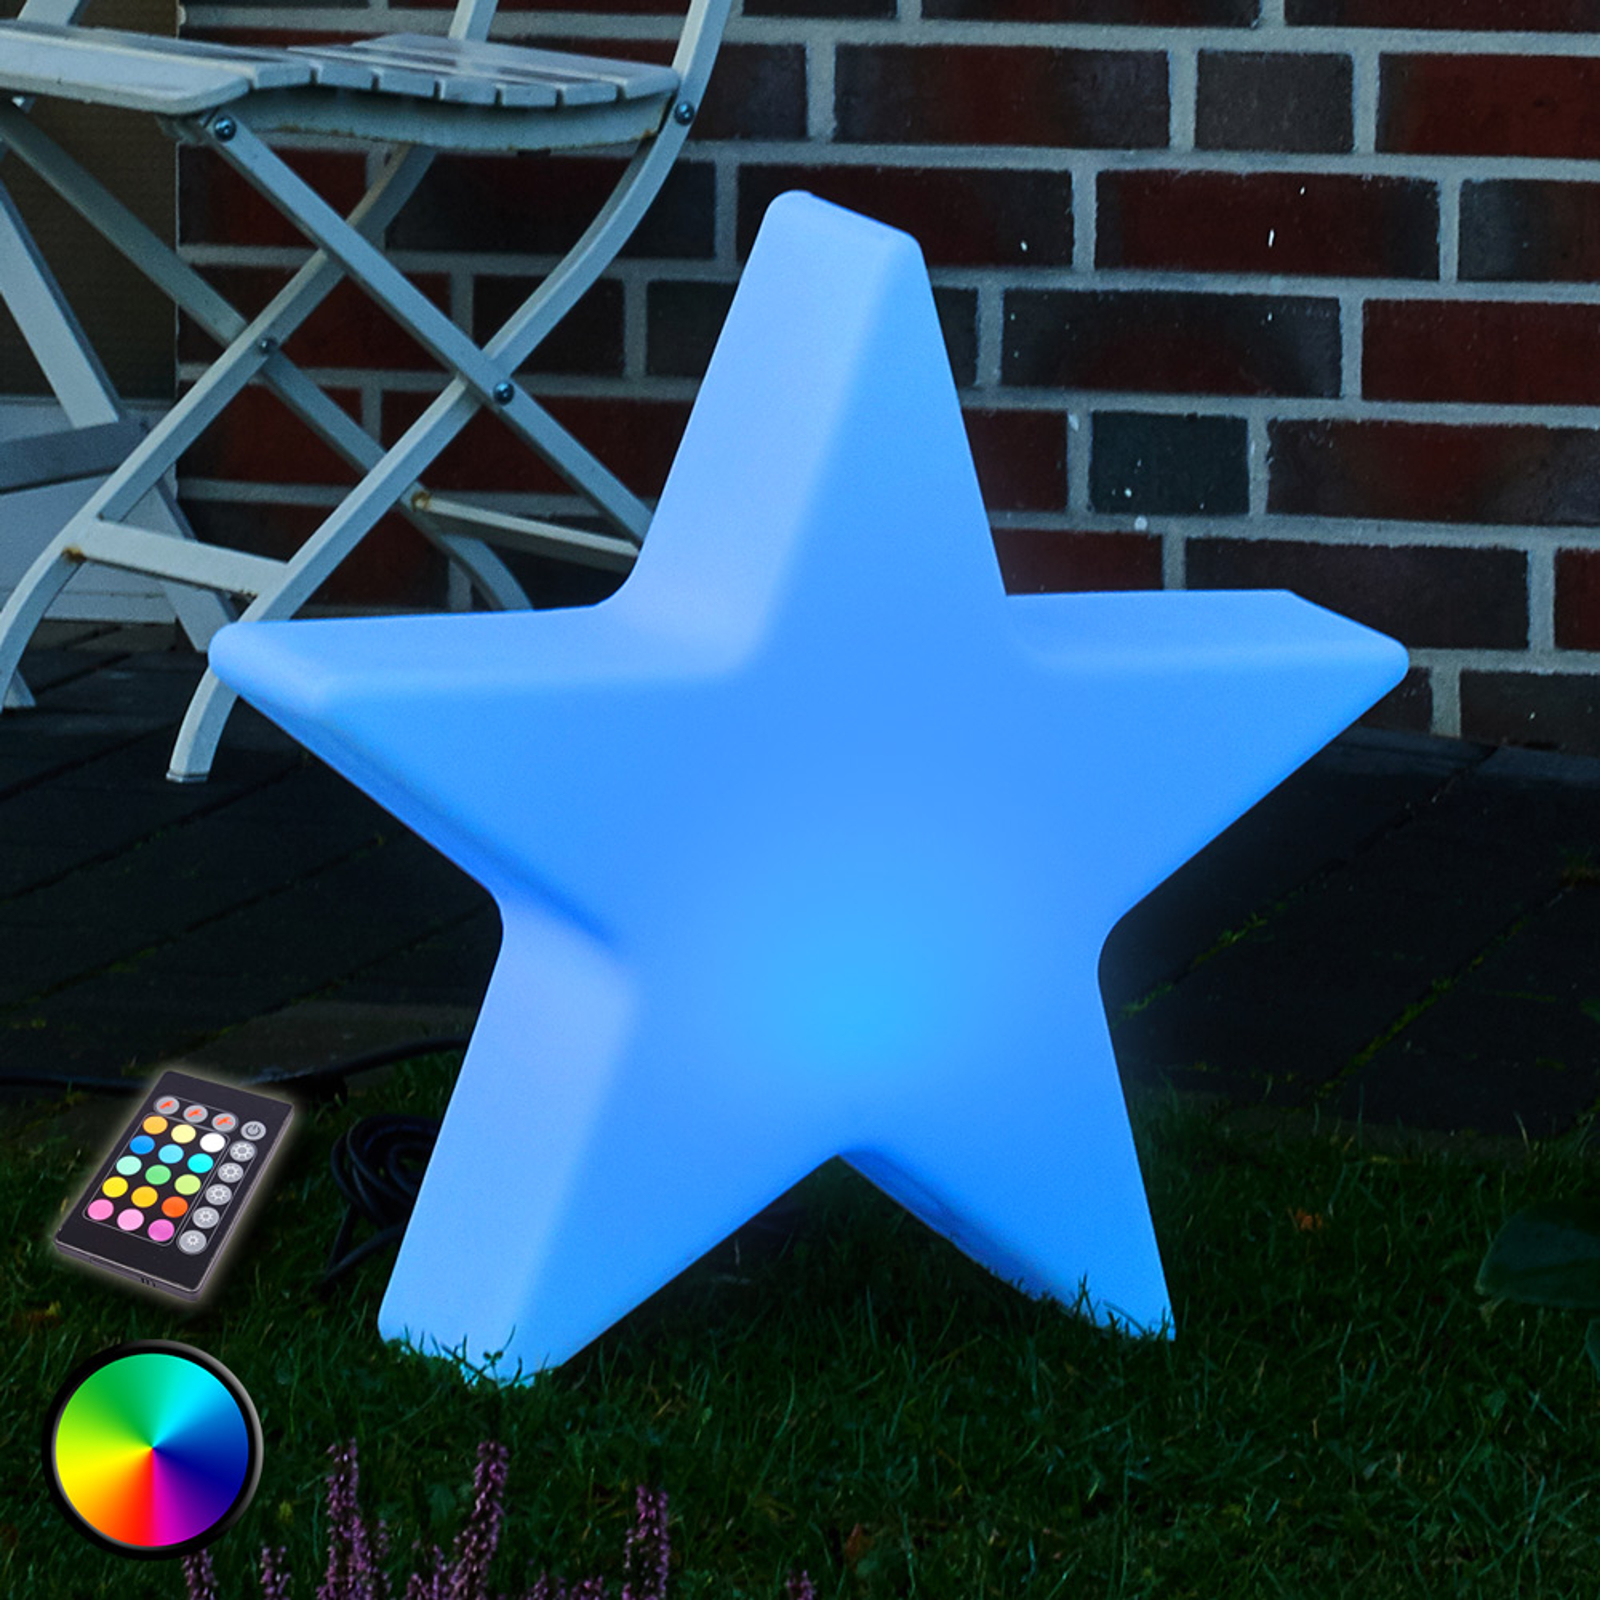 LED-dekorlampe Shining Star med RBG-LED, 40 cm